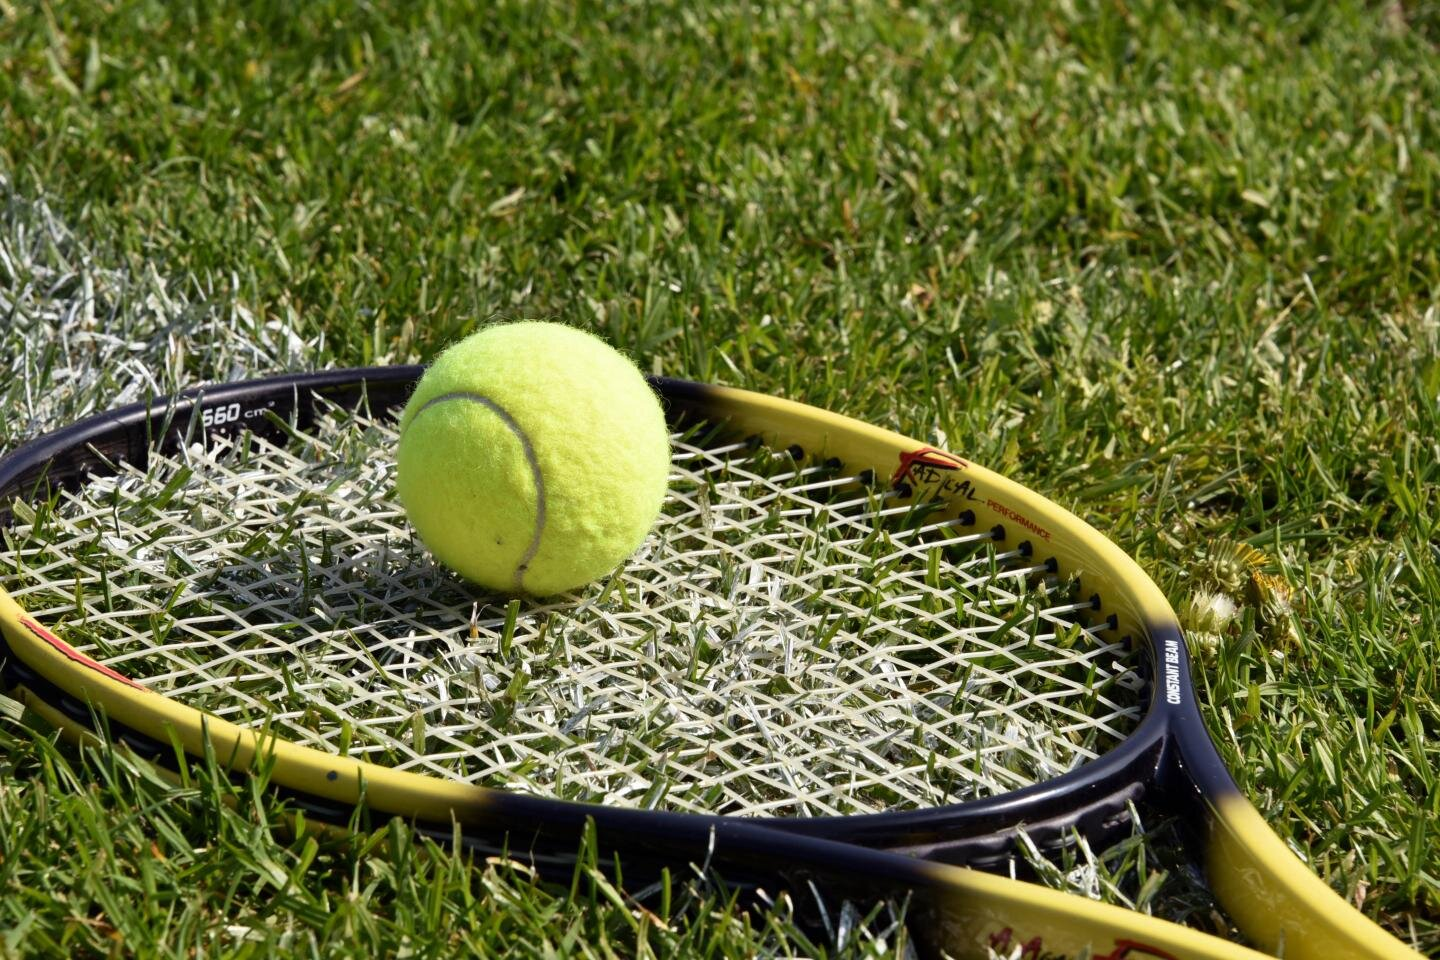 How Grunting Influences Perception In Tennis